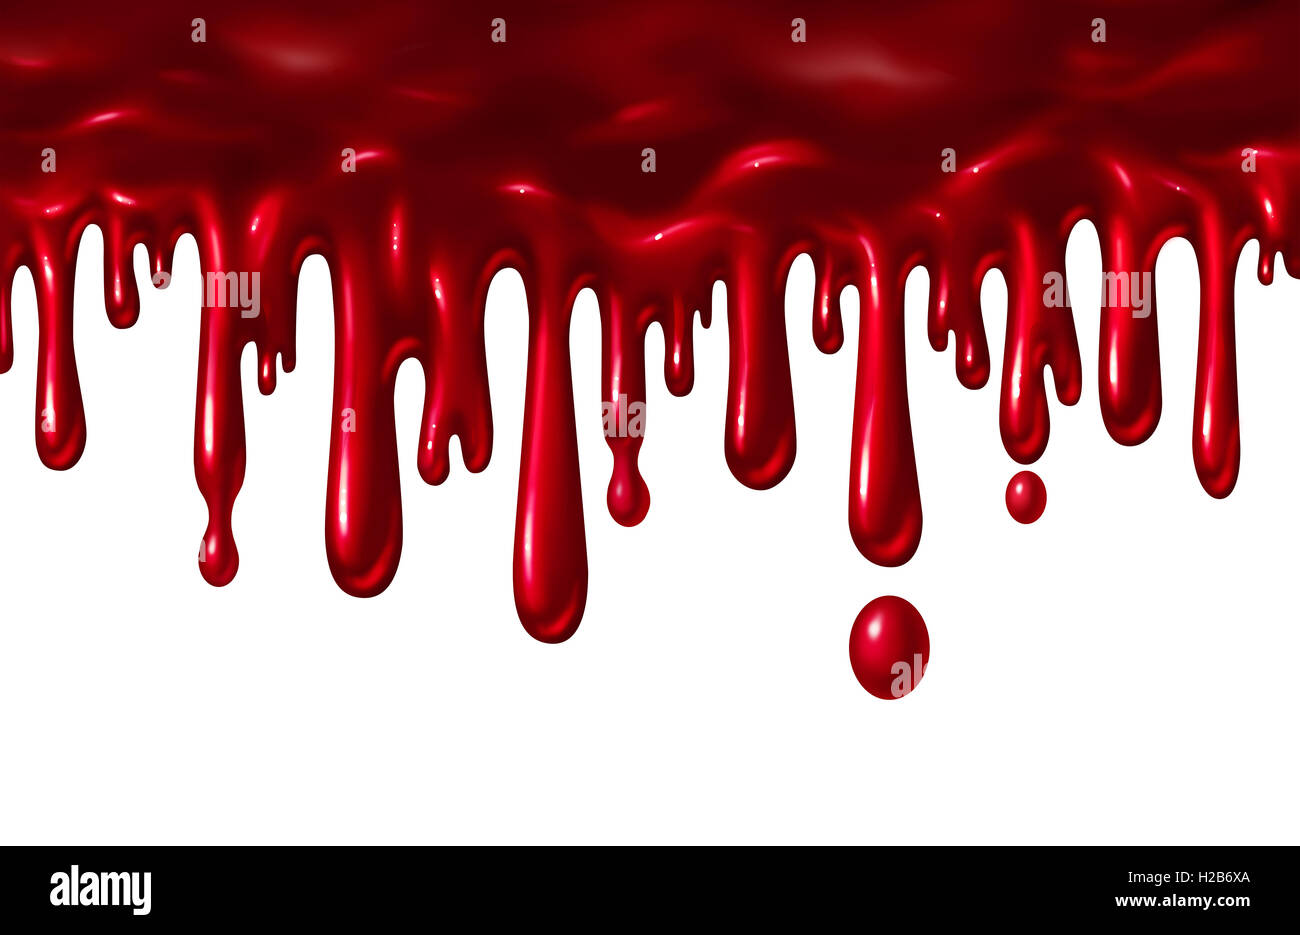 Blood liquid dripping down as a red splatter with drops falling down blood liquid dripping down as a red splatter with drops falling down as a halloween element or symbol of violence and terror isolated on a white background buycottarizona Choice Image